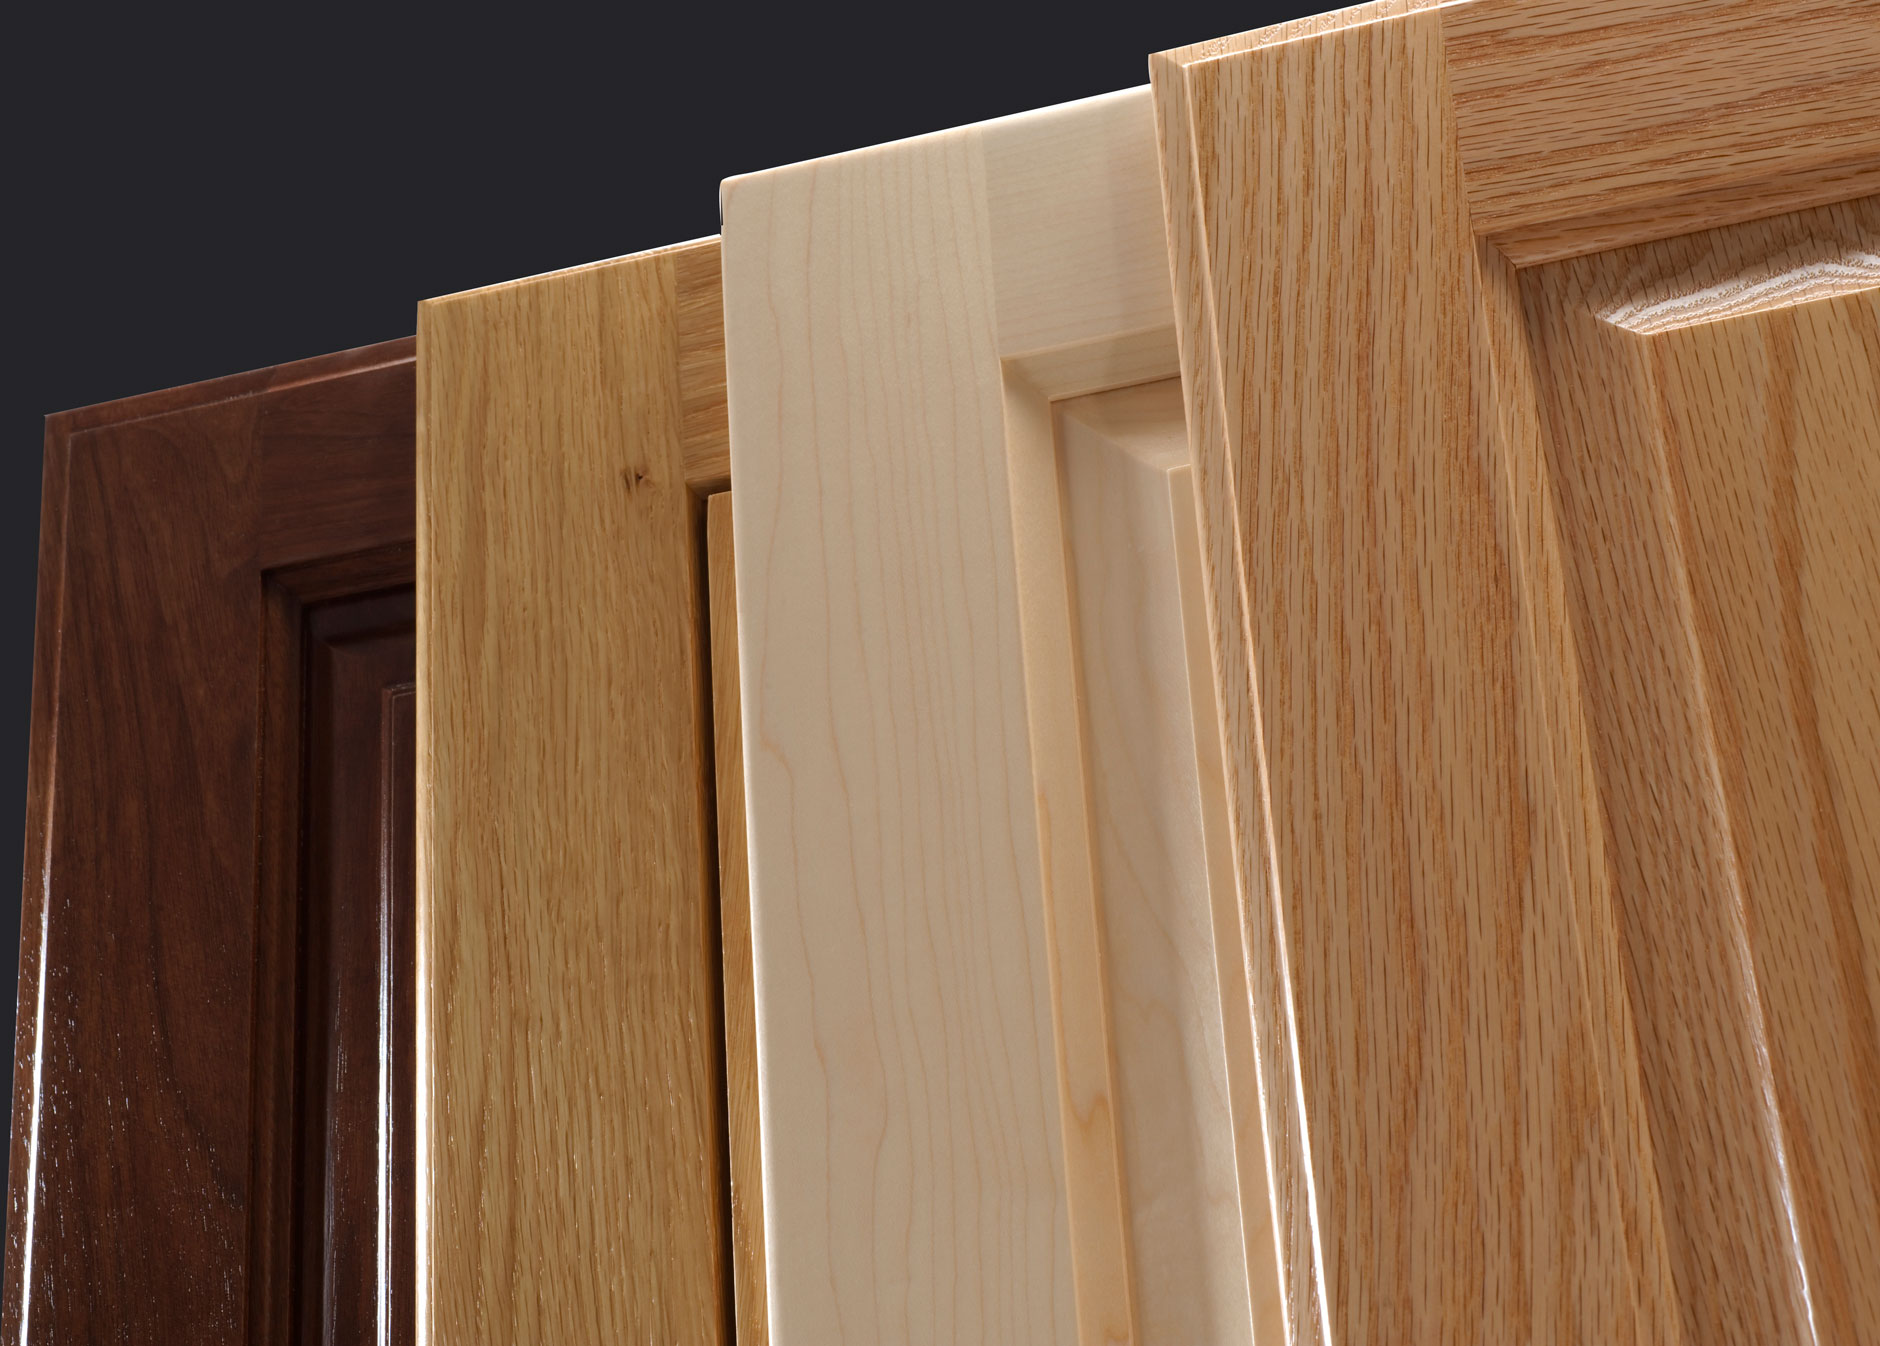 4 cope and stick raised panel cabinet doors by TaylorCraft Cabinet Door Company